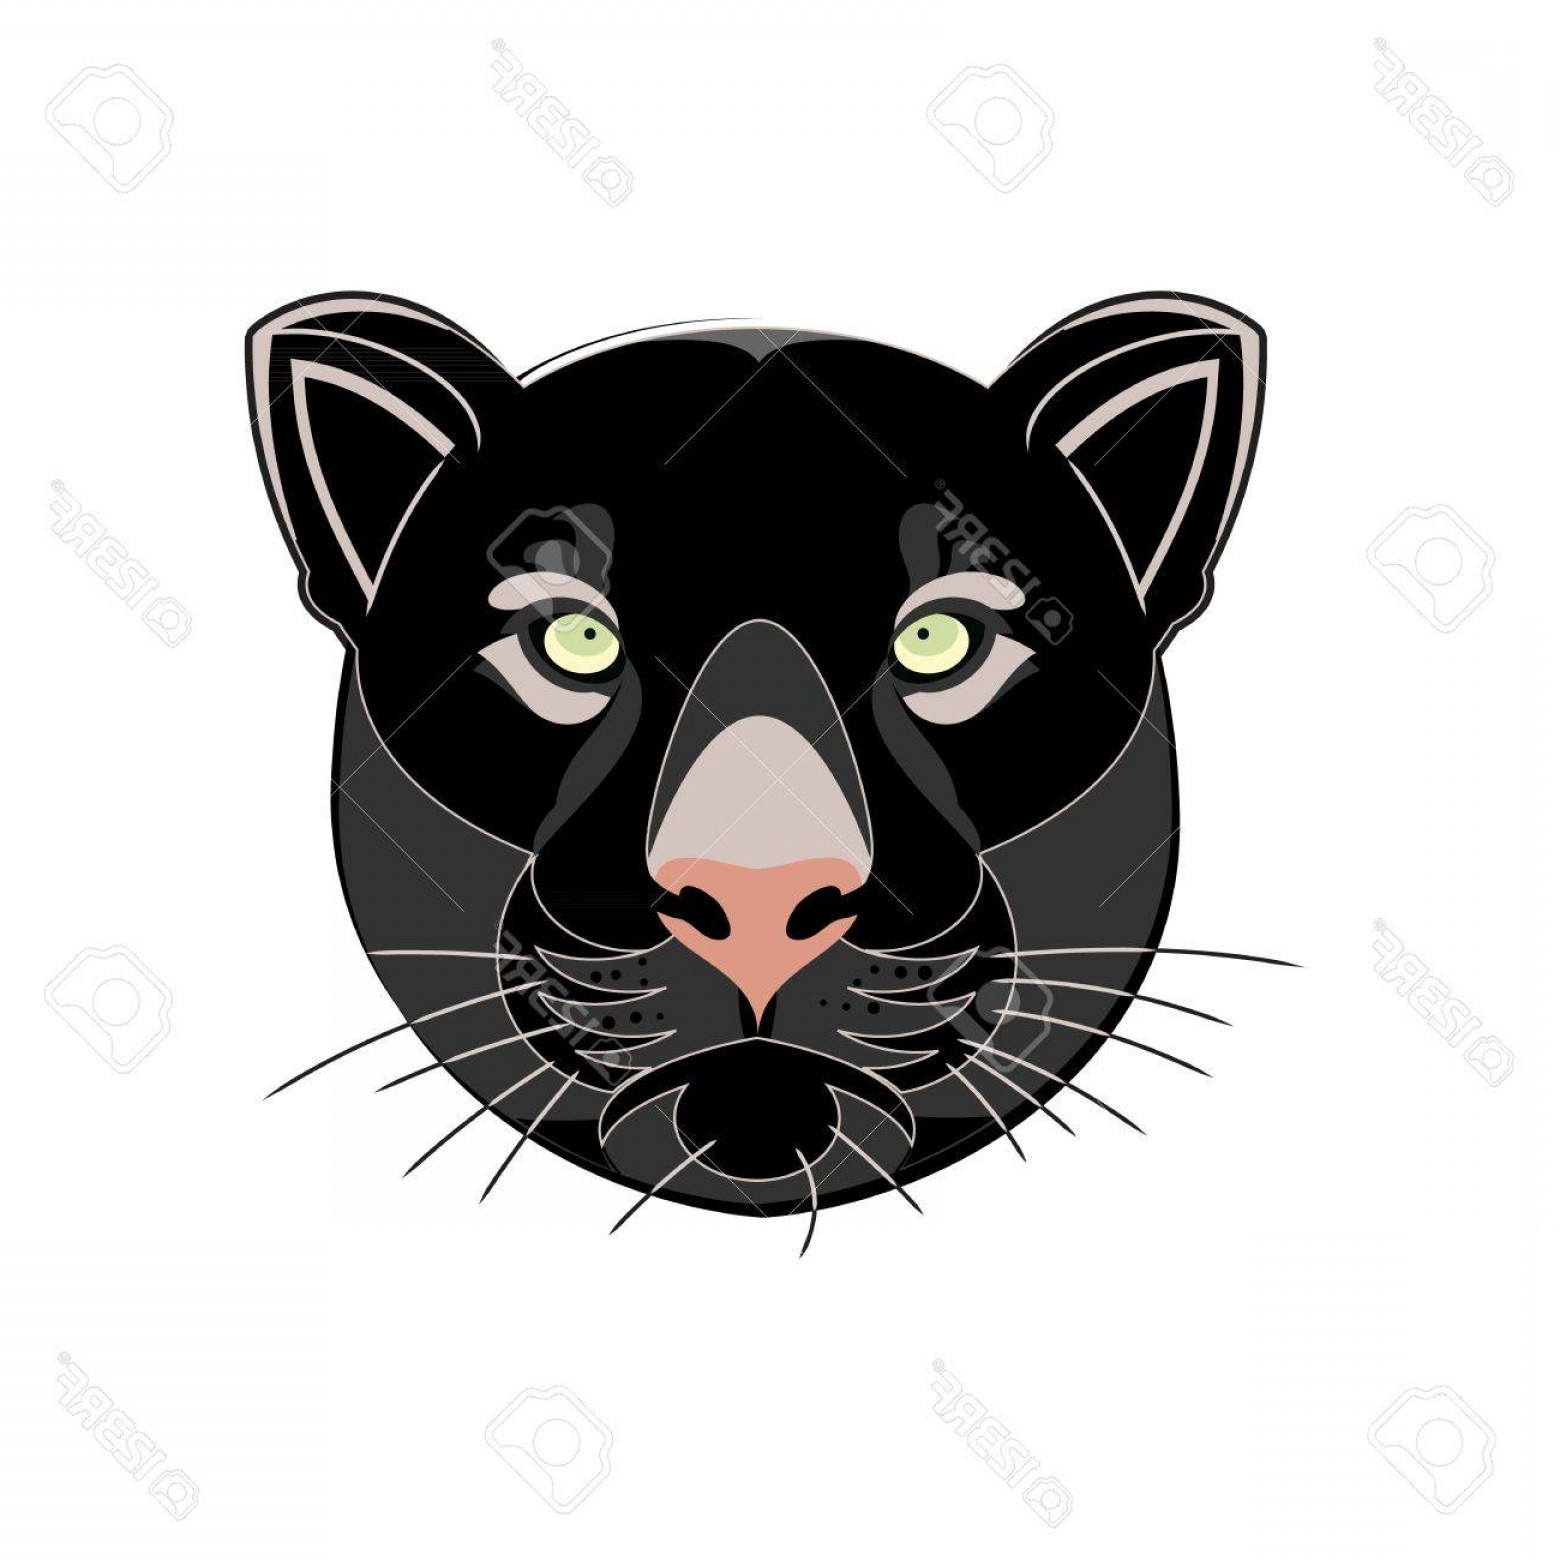 Malee Cat Head Silhouette Vector: Photostock Vector Beautiful Black Panther Head Silhouette Vector Illustration Isolated On White Background